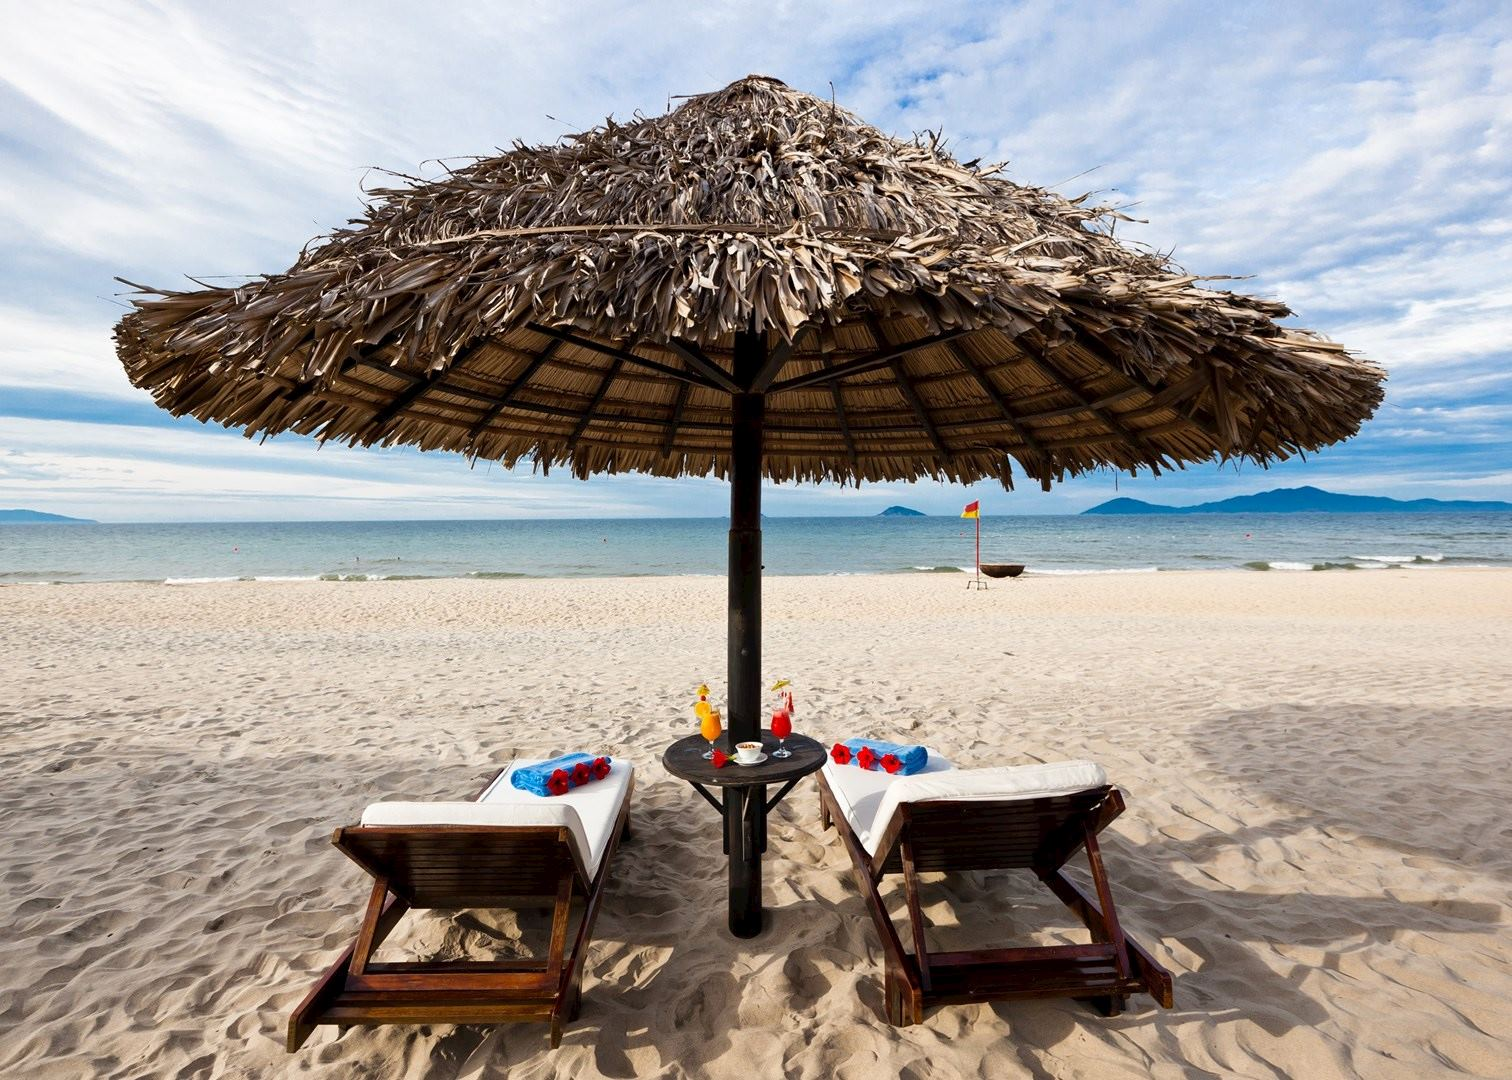 victoria beach resort hotels in hoi an audley travel